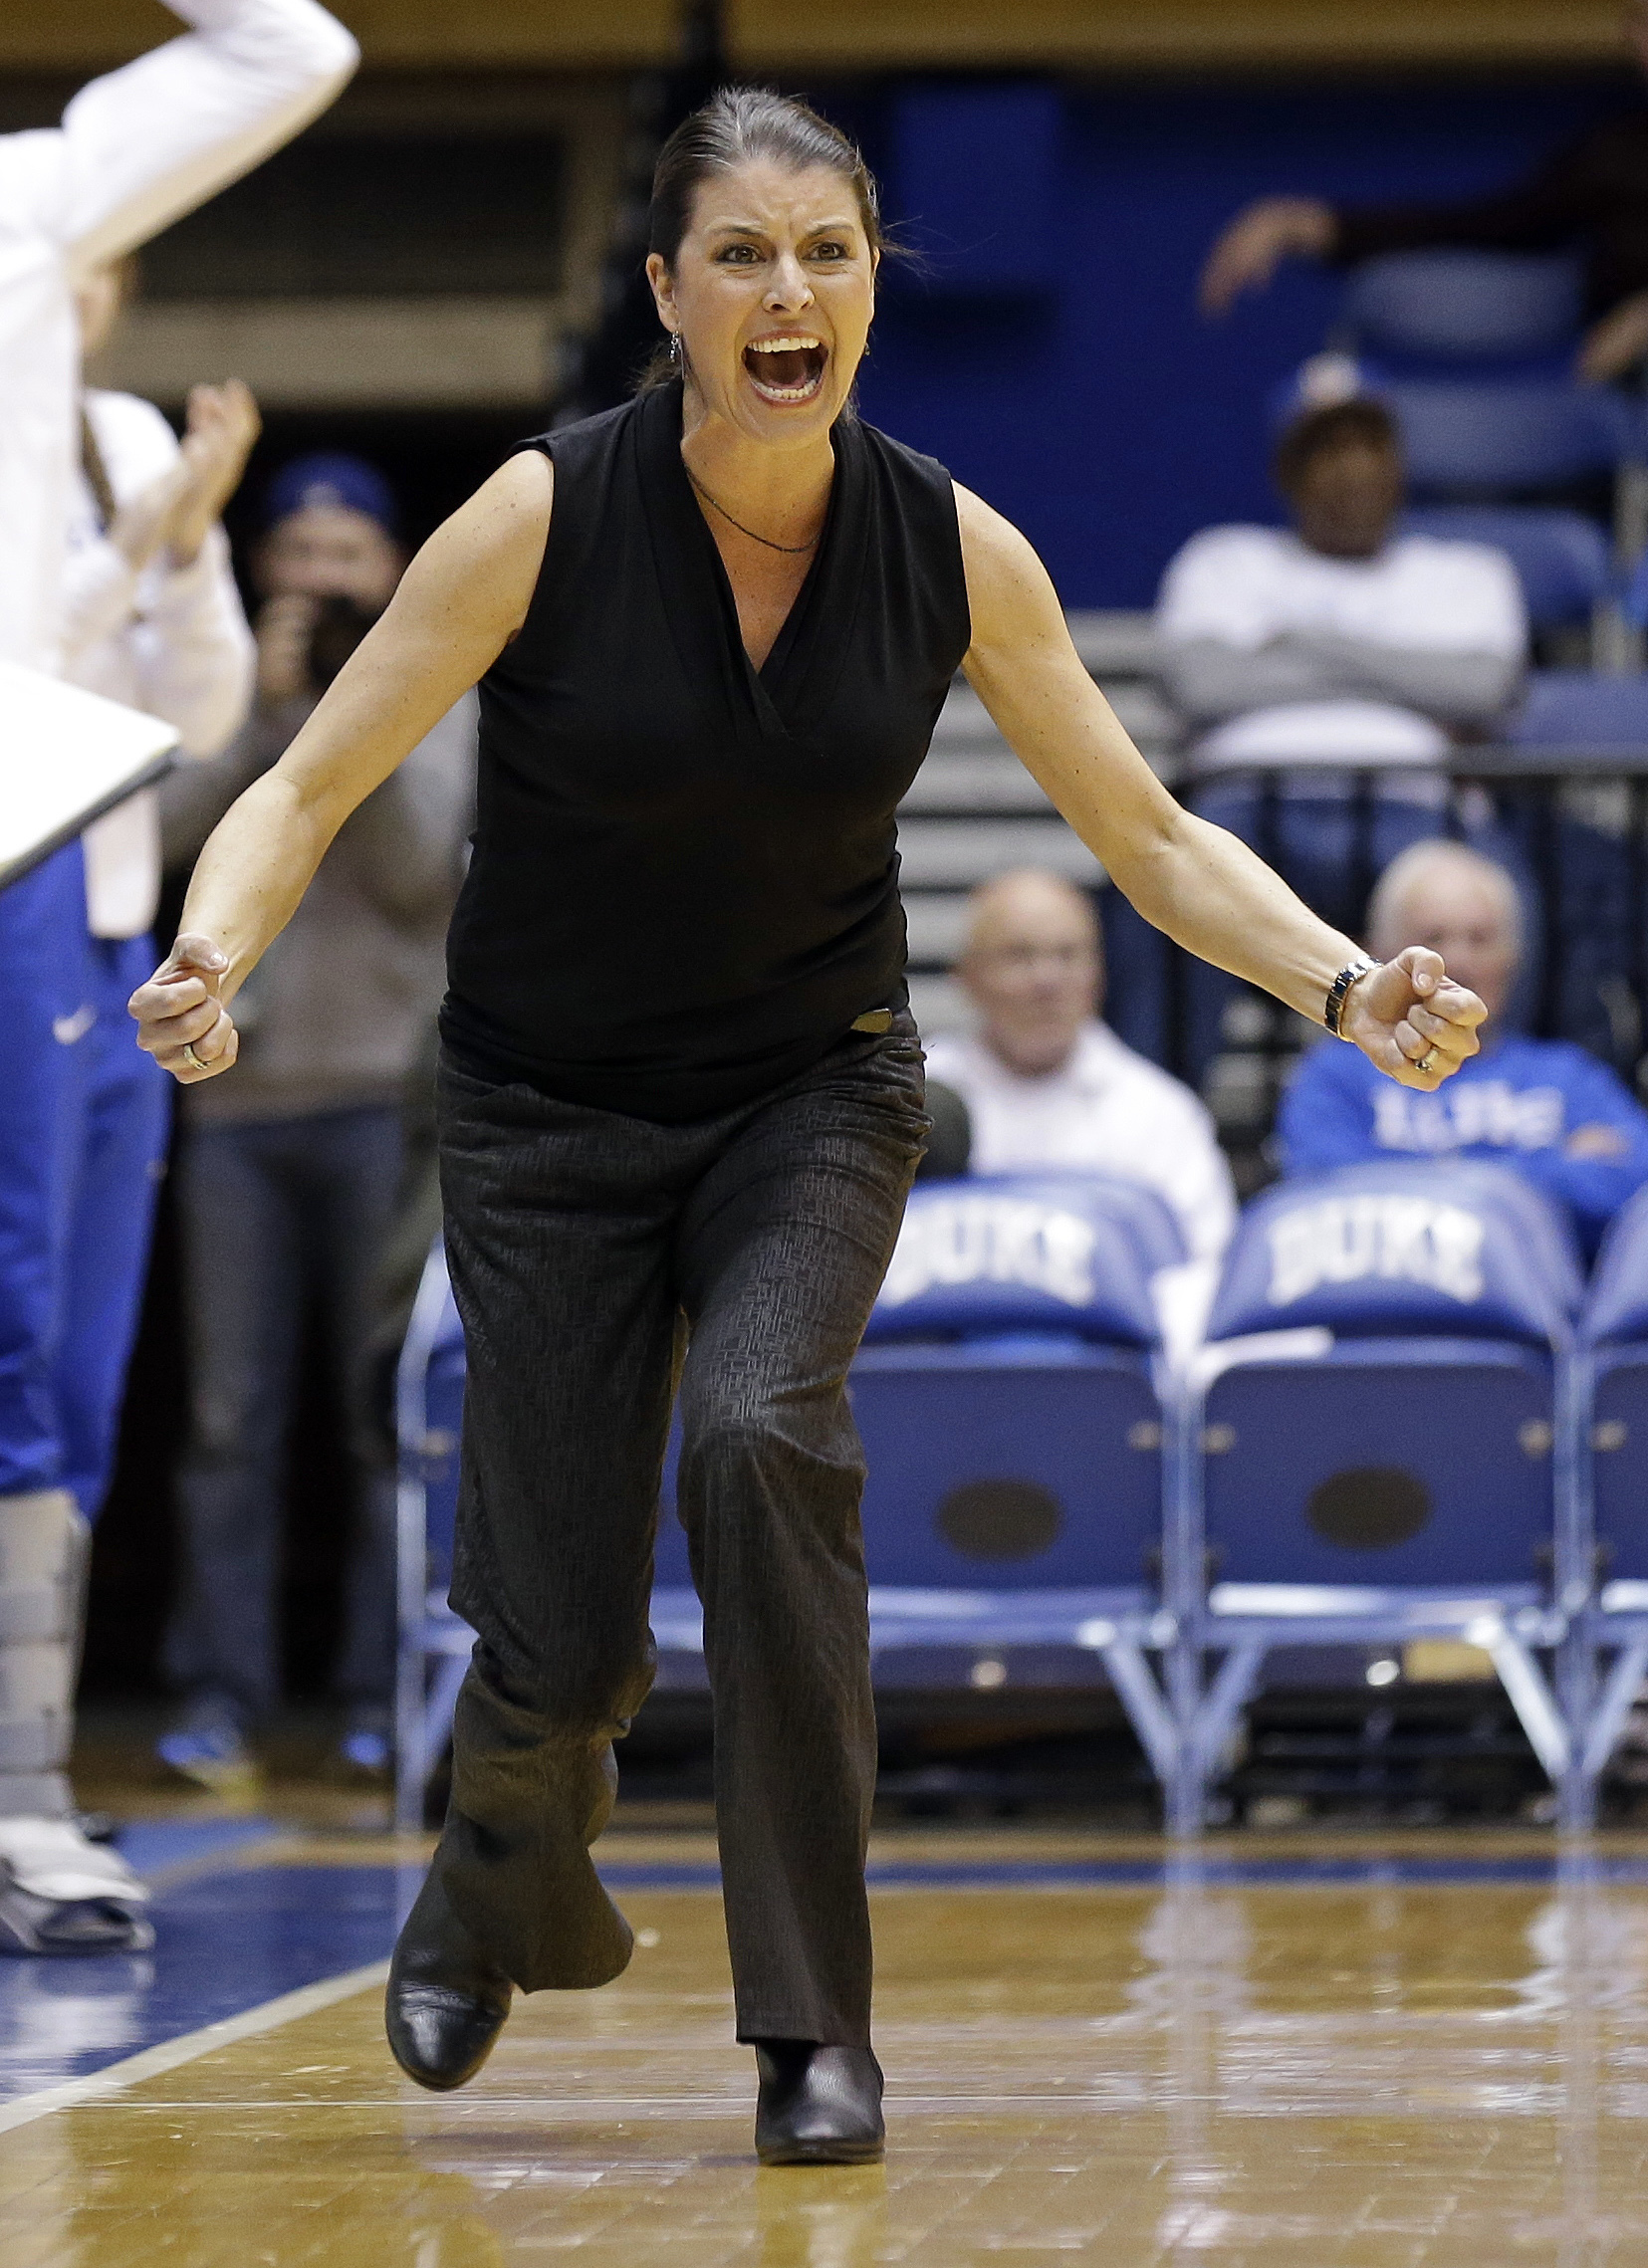 FILE - In this Feb. 11, 2016, file photo, Duke coach Joanne P. McCallie reacts during the second half of an NCAA college basketball game against Florida State, in Durham, N.C. After a one-year absence, the Blue Devils mark their return to the postseason S